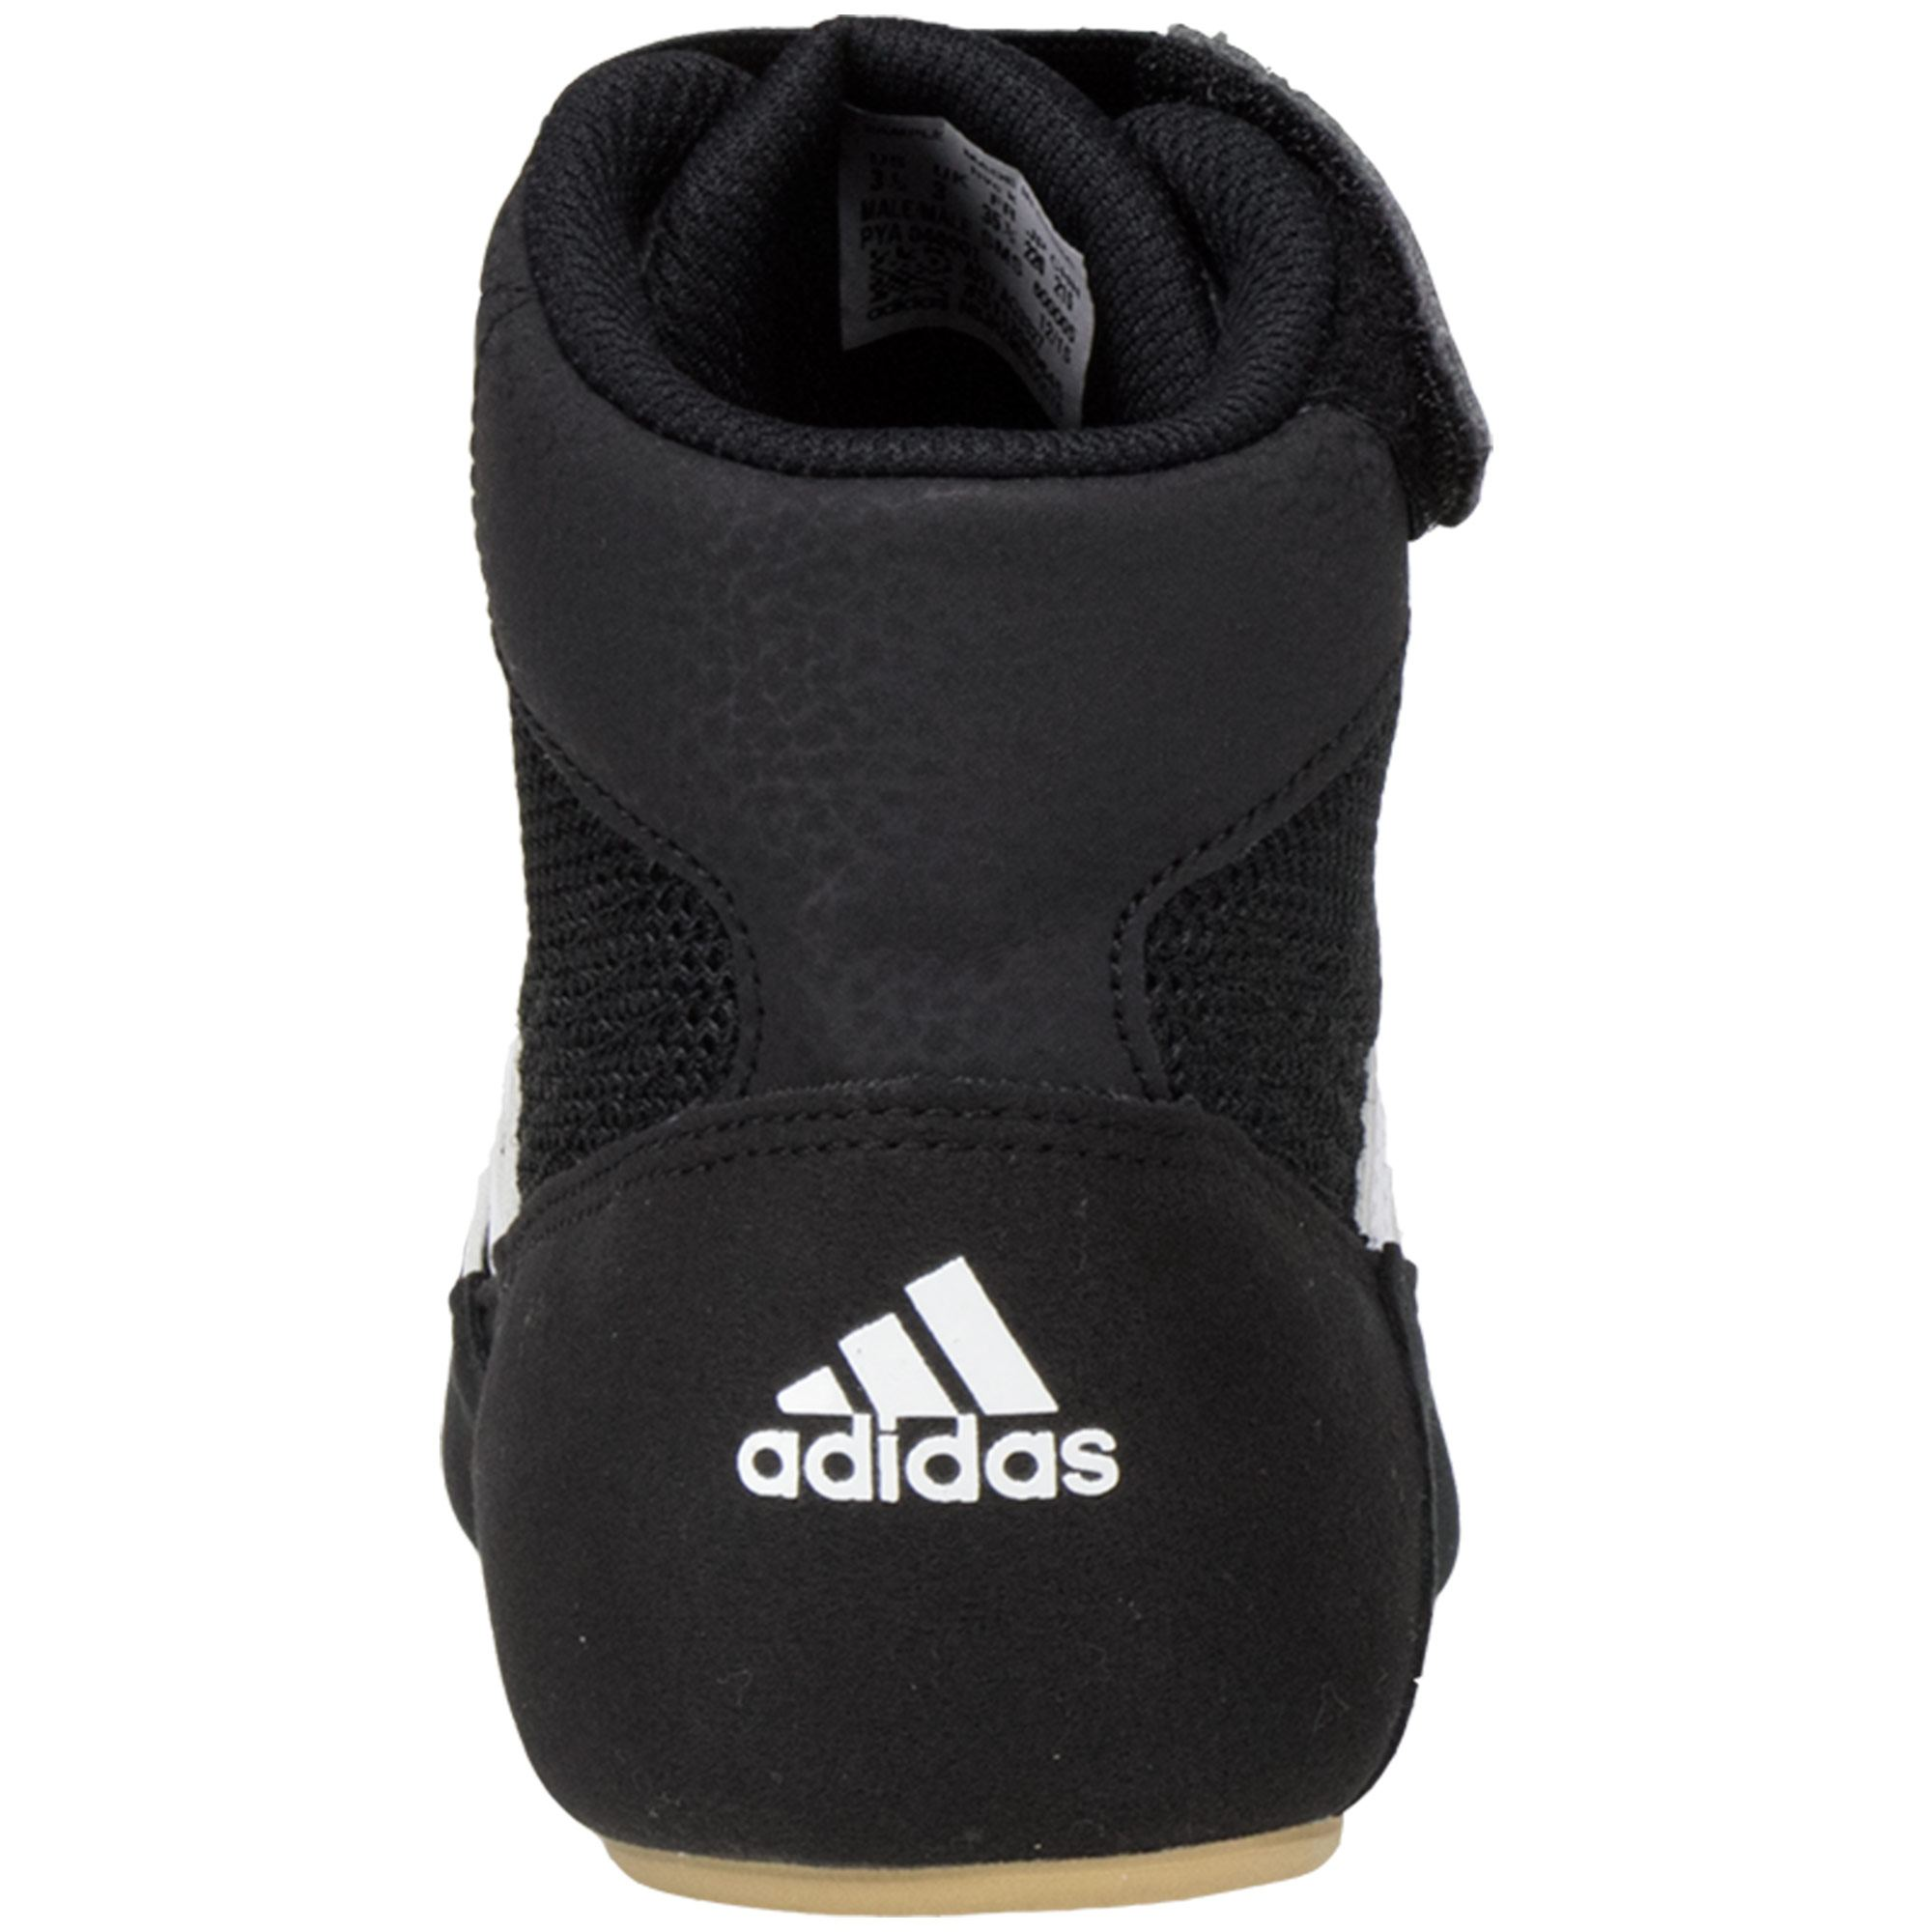 569c94efe45d58 ... insideAdidas HVC 2 Youth Laced Black White Beige ...